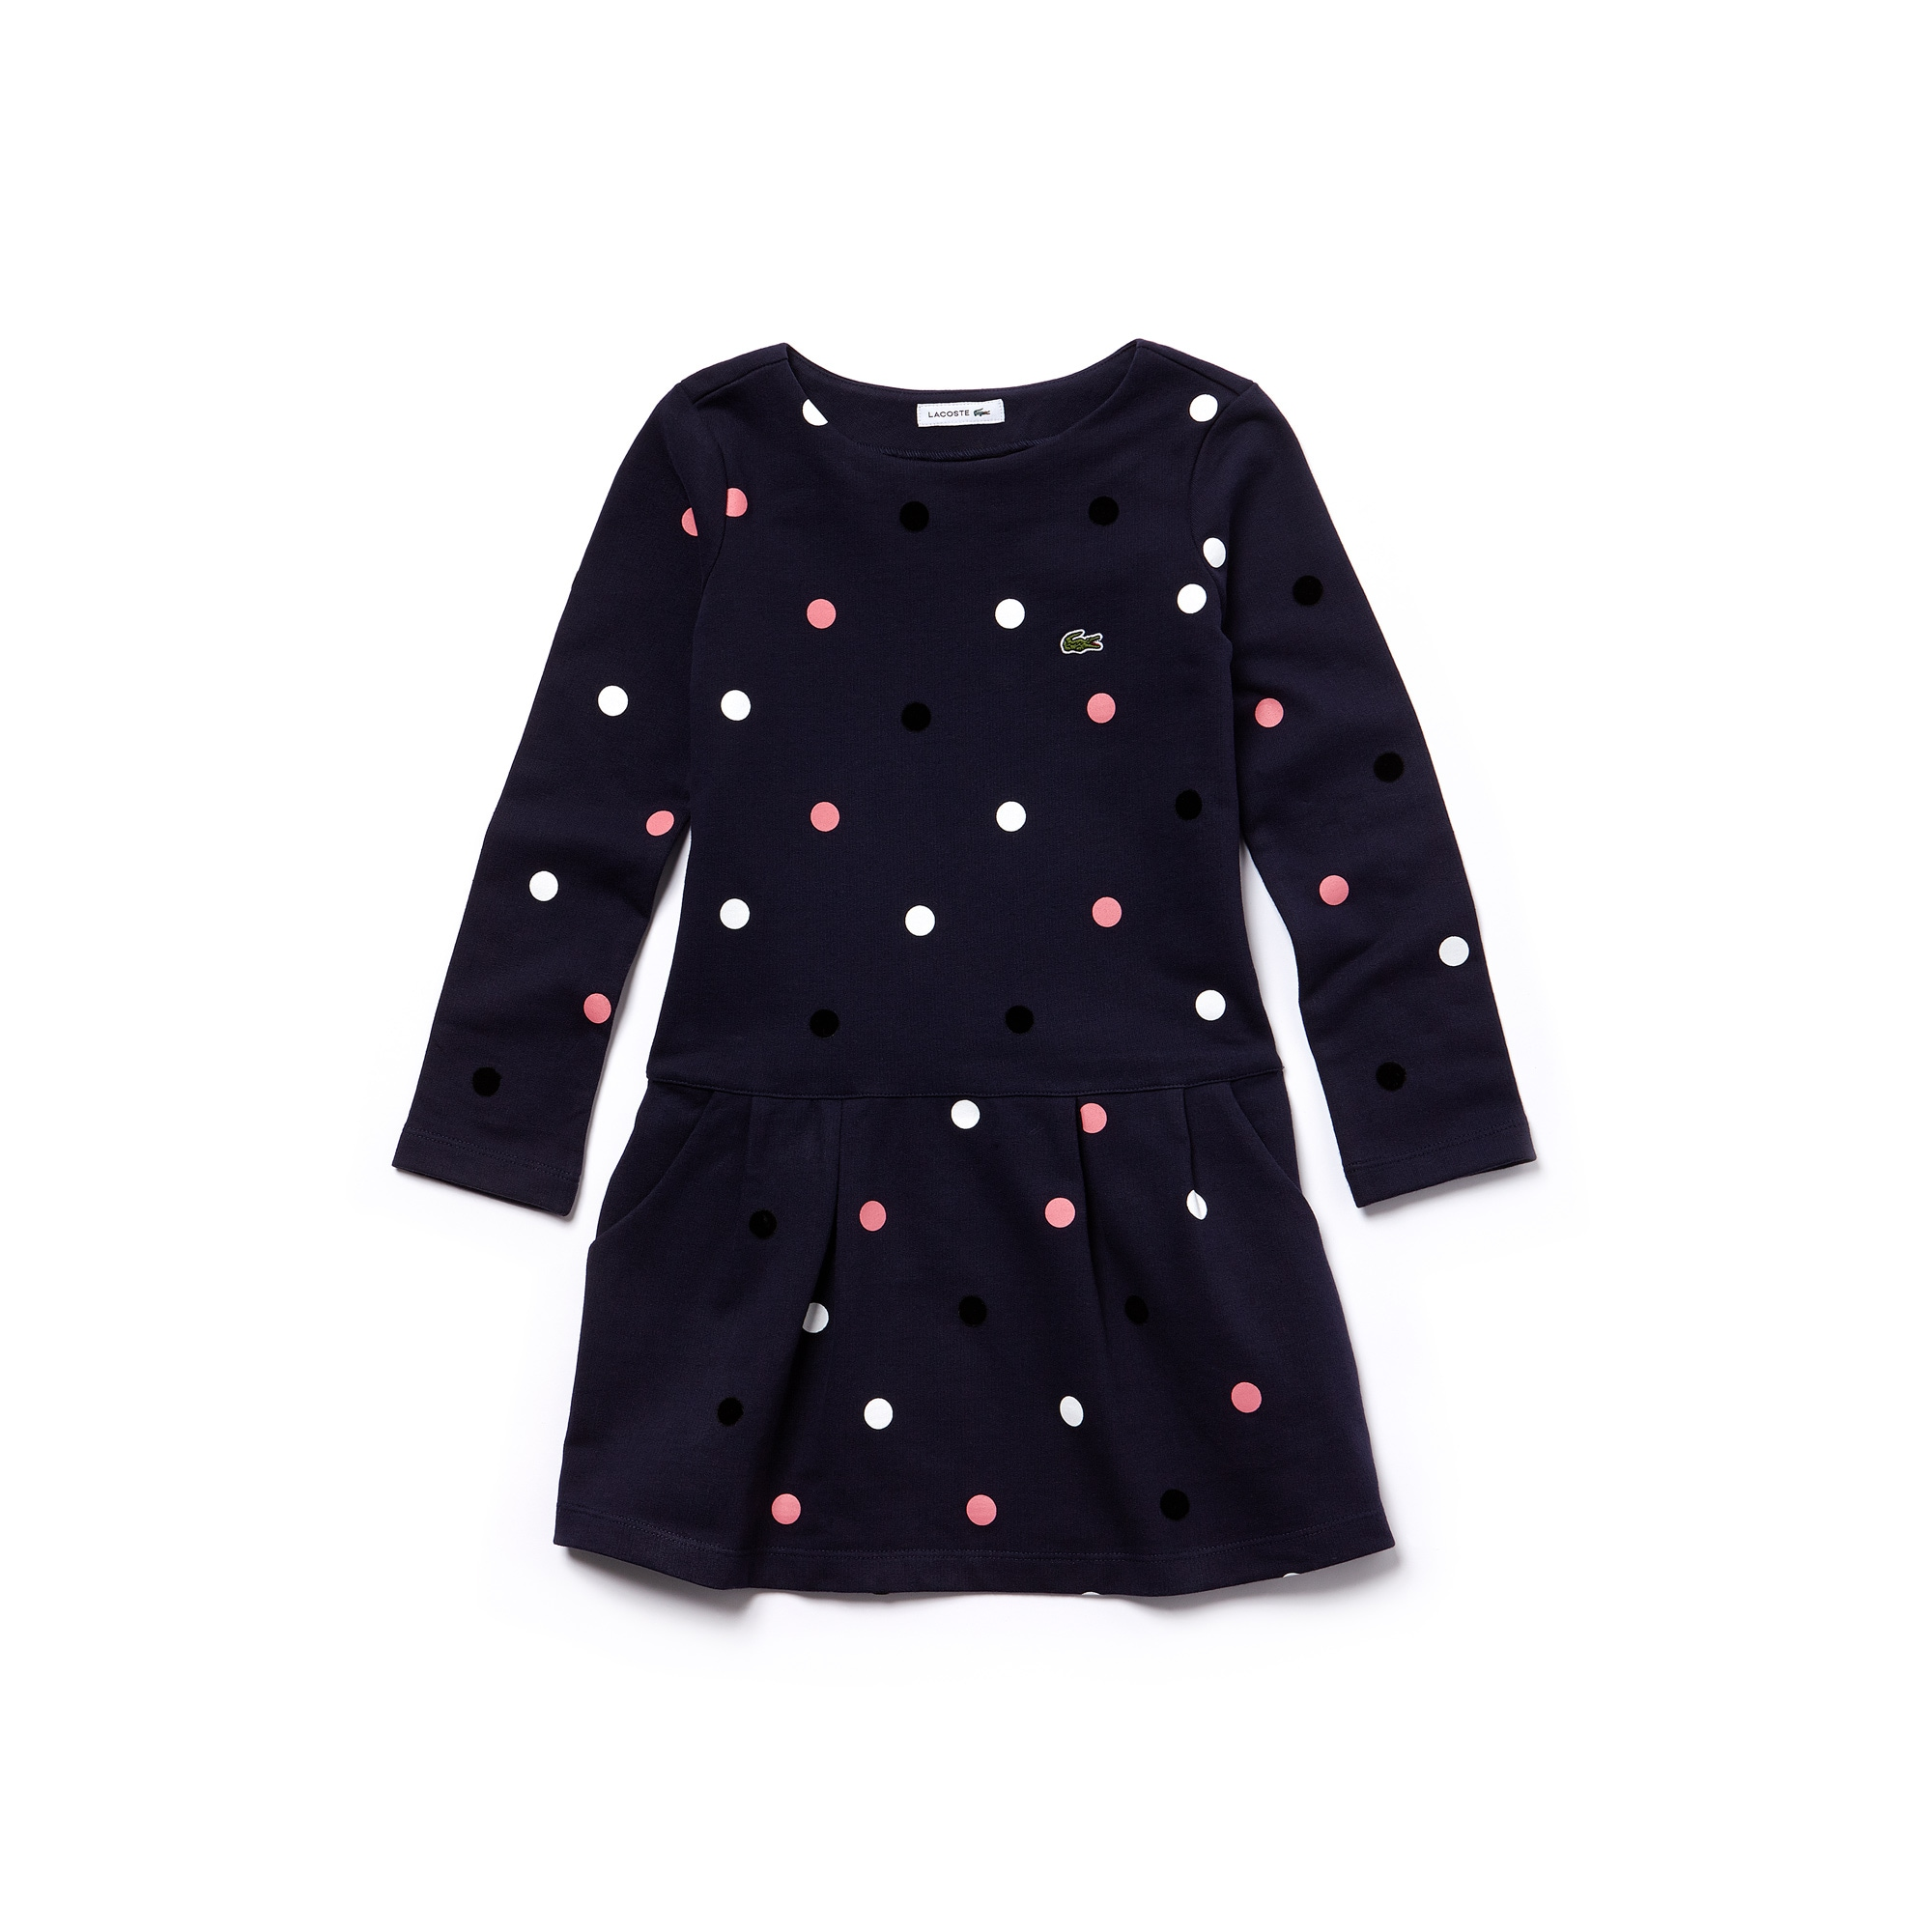 Girls' Polka Dot Stretch Cotton Fleece Sweatshirt Dress